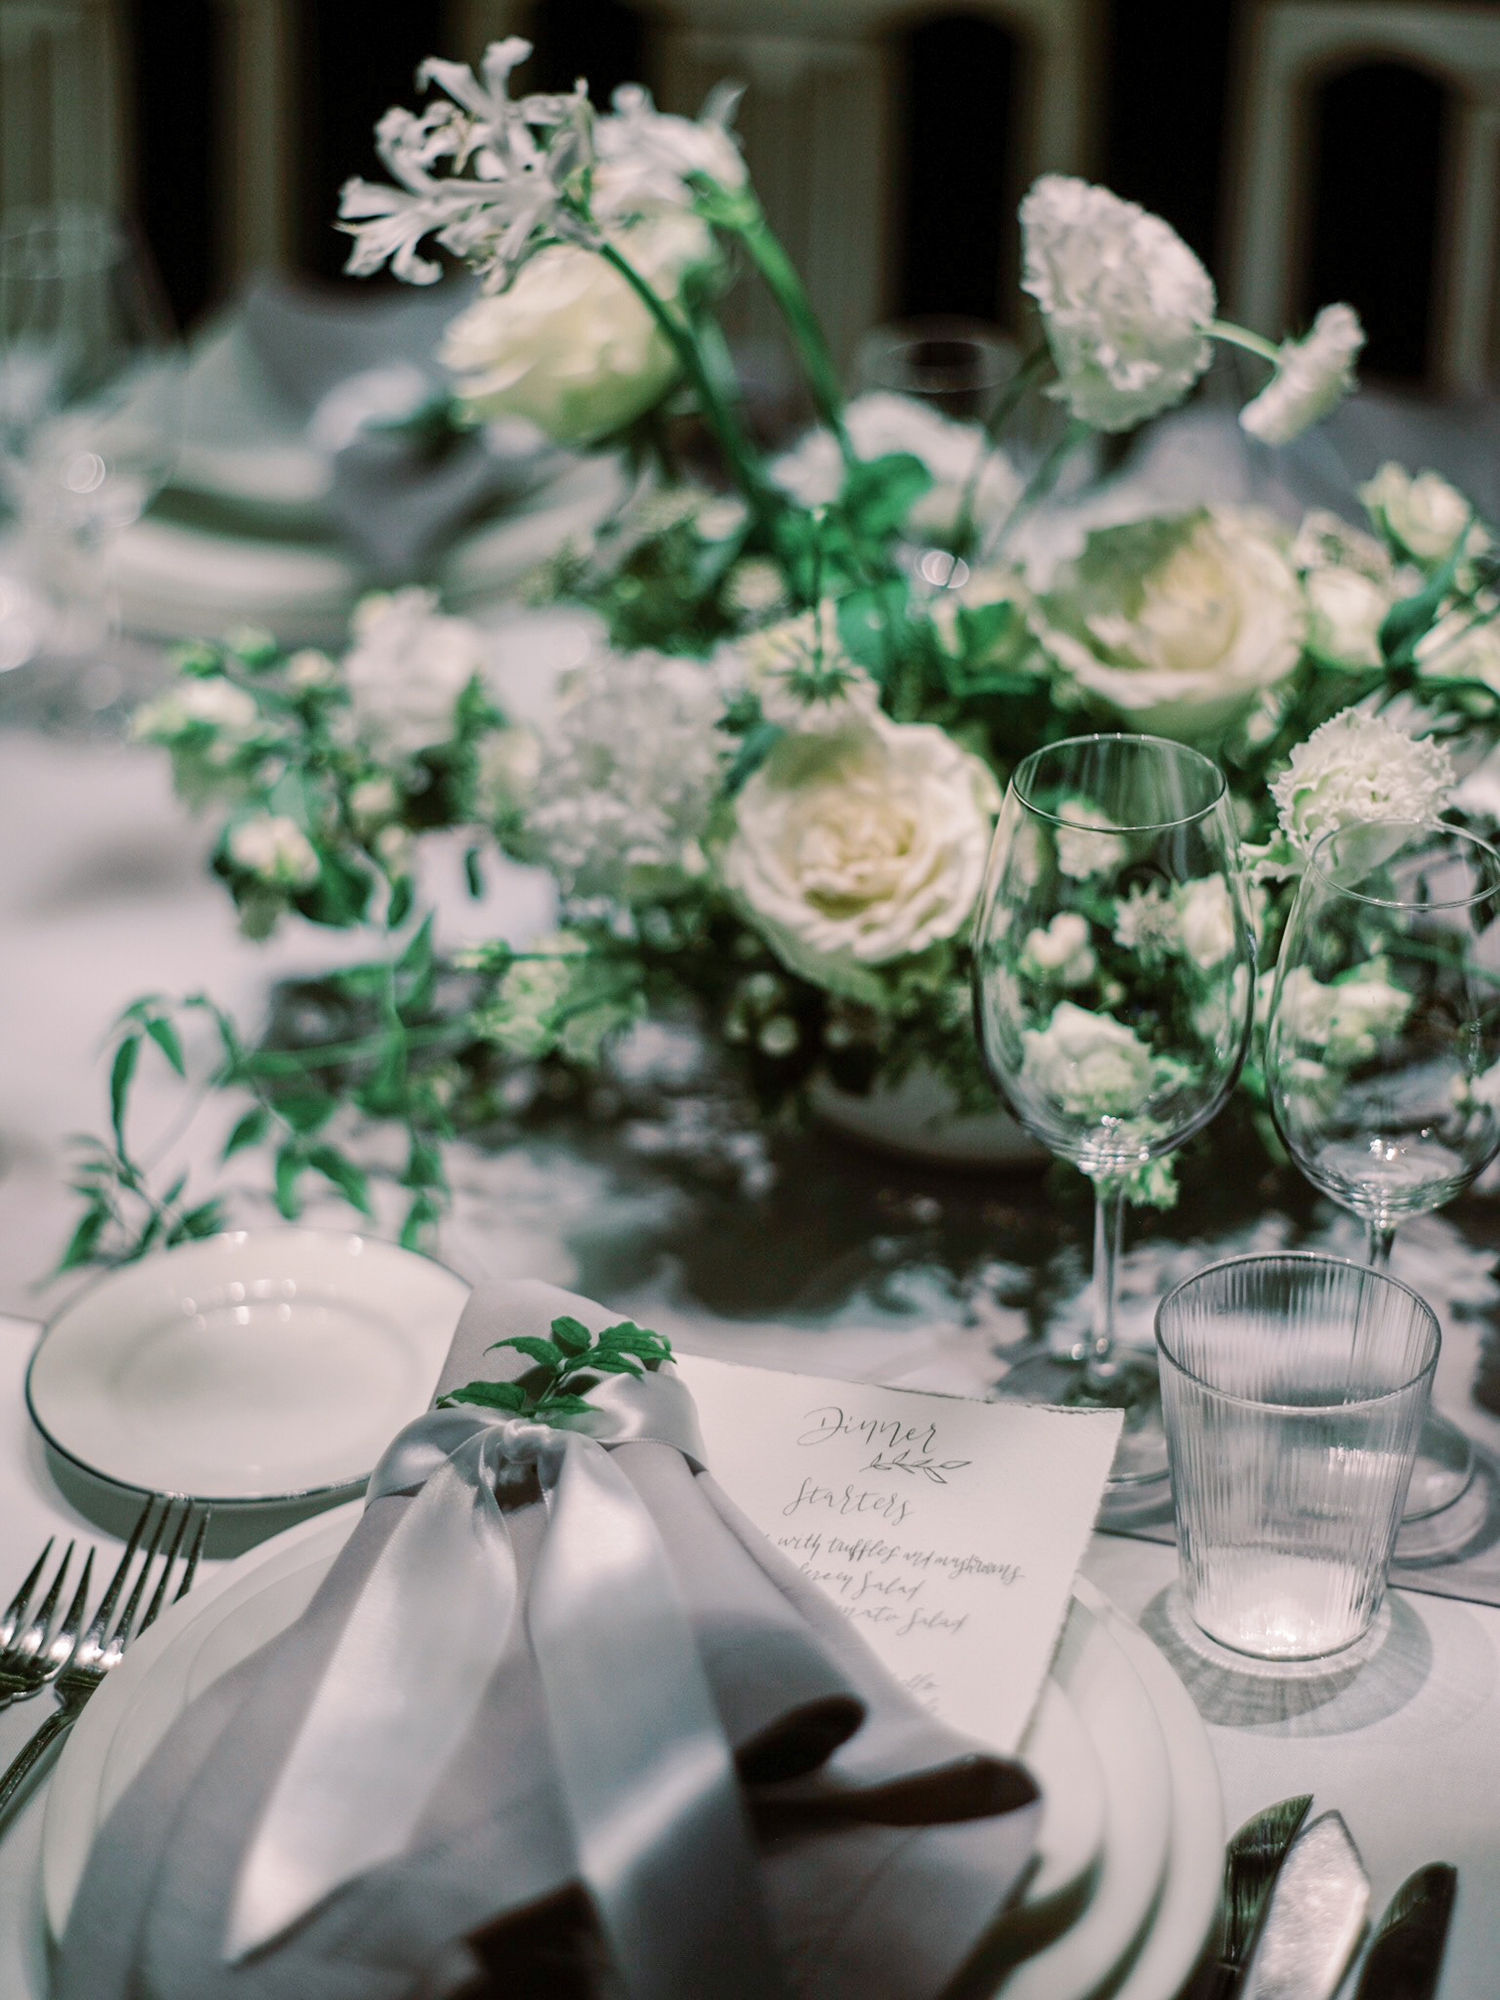 Table setting on a wedding at Douro Valley